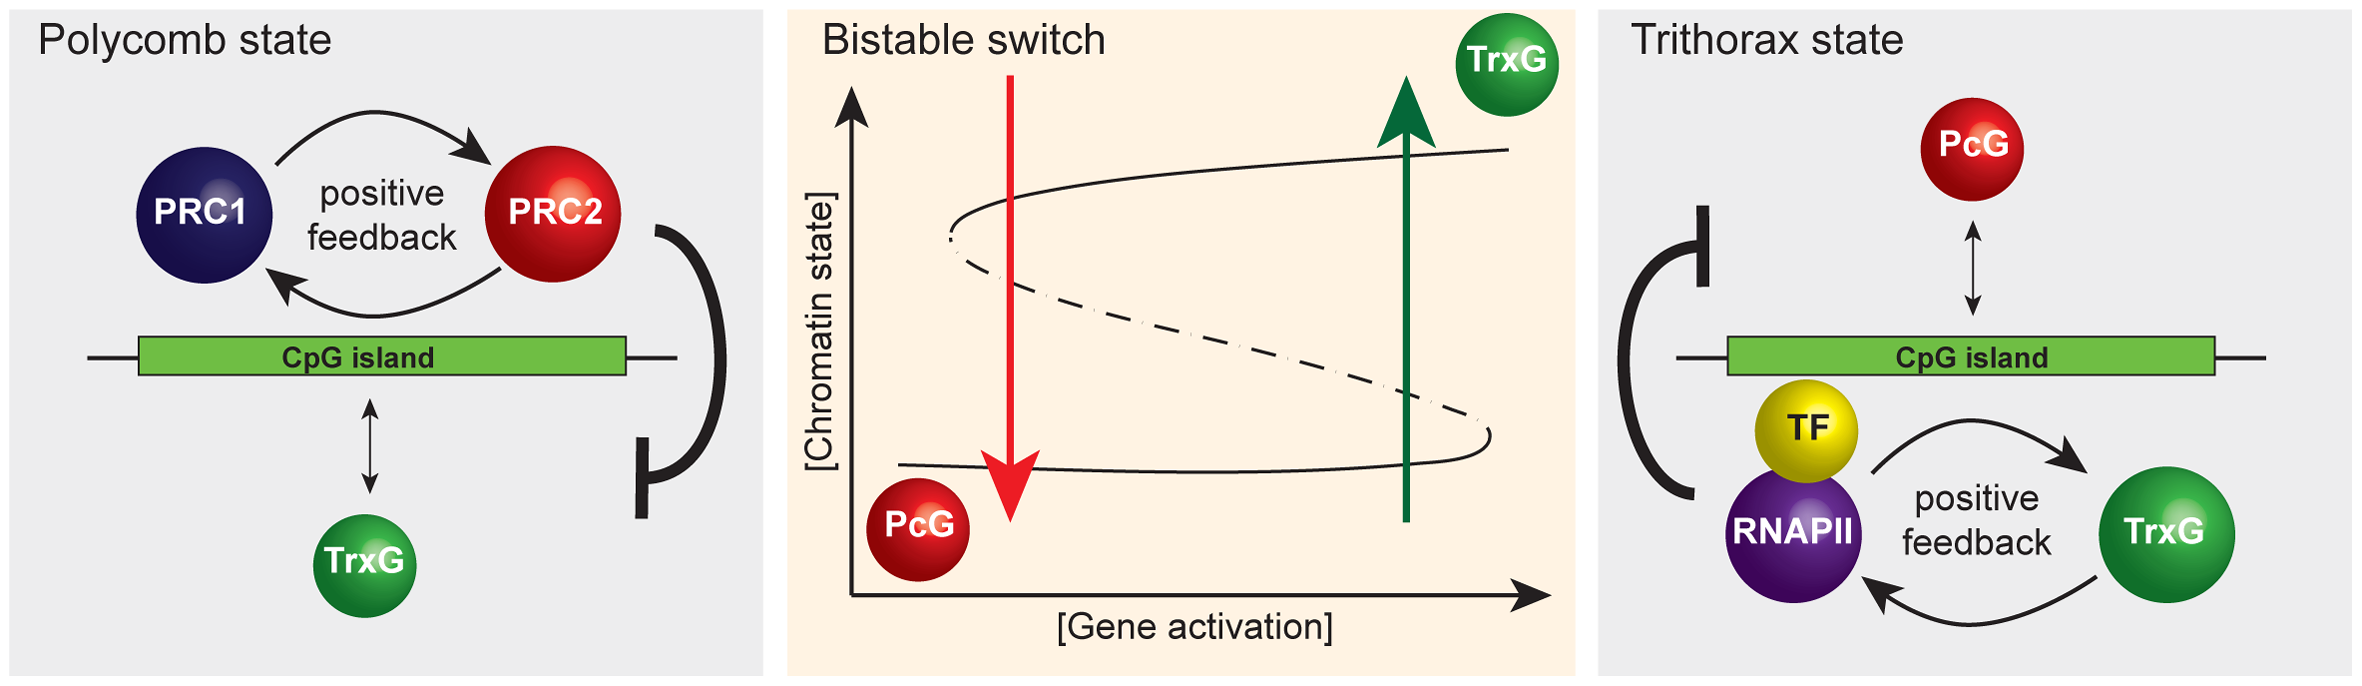 A simplified representation of the responsive model emphasizing that it has properties of a classical bistable switch.